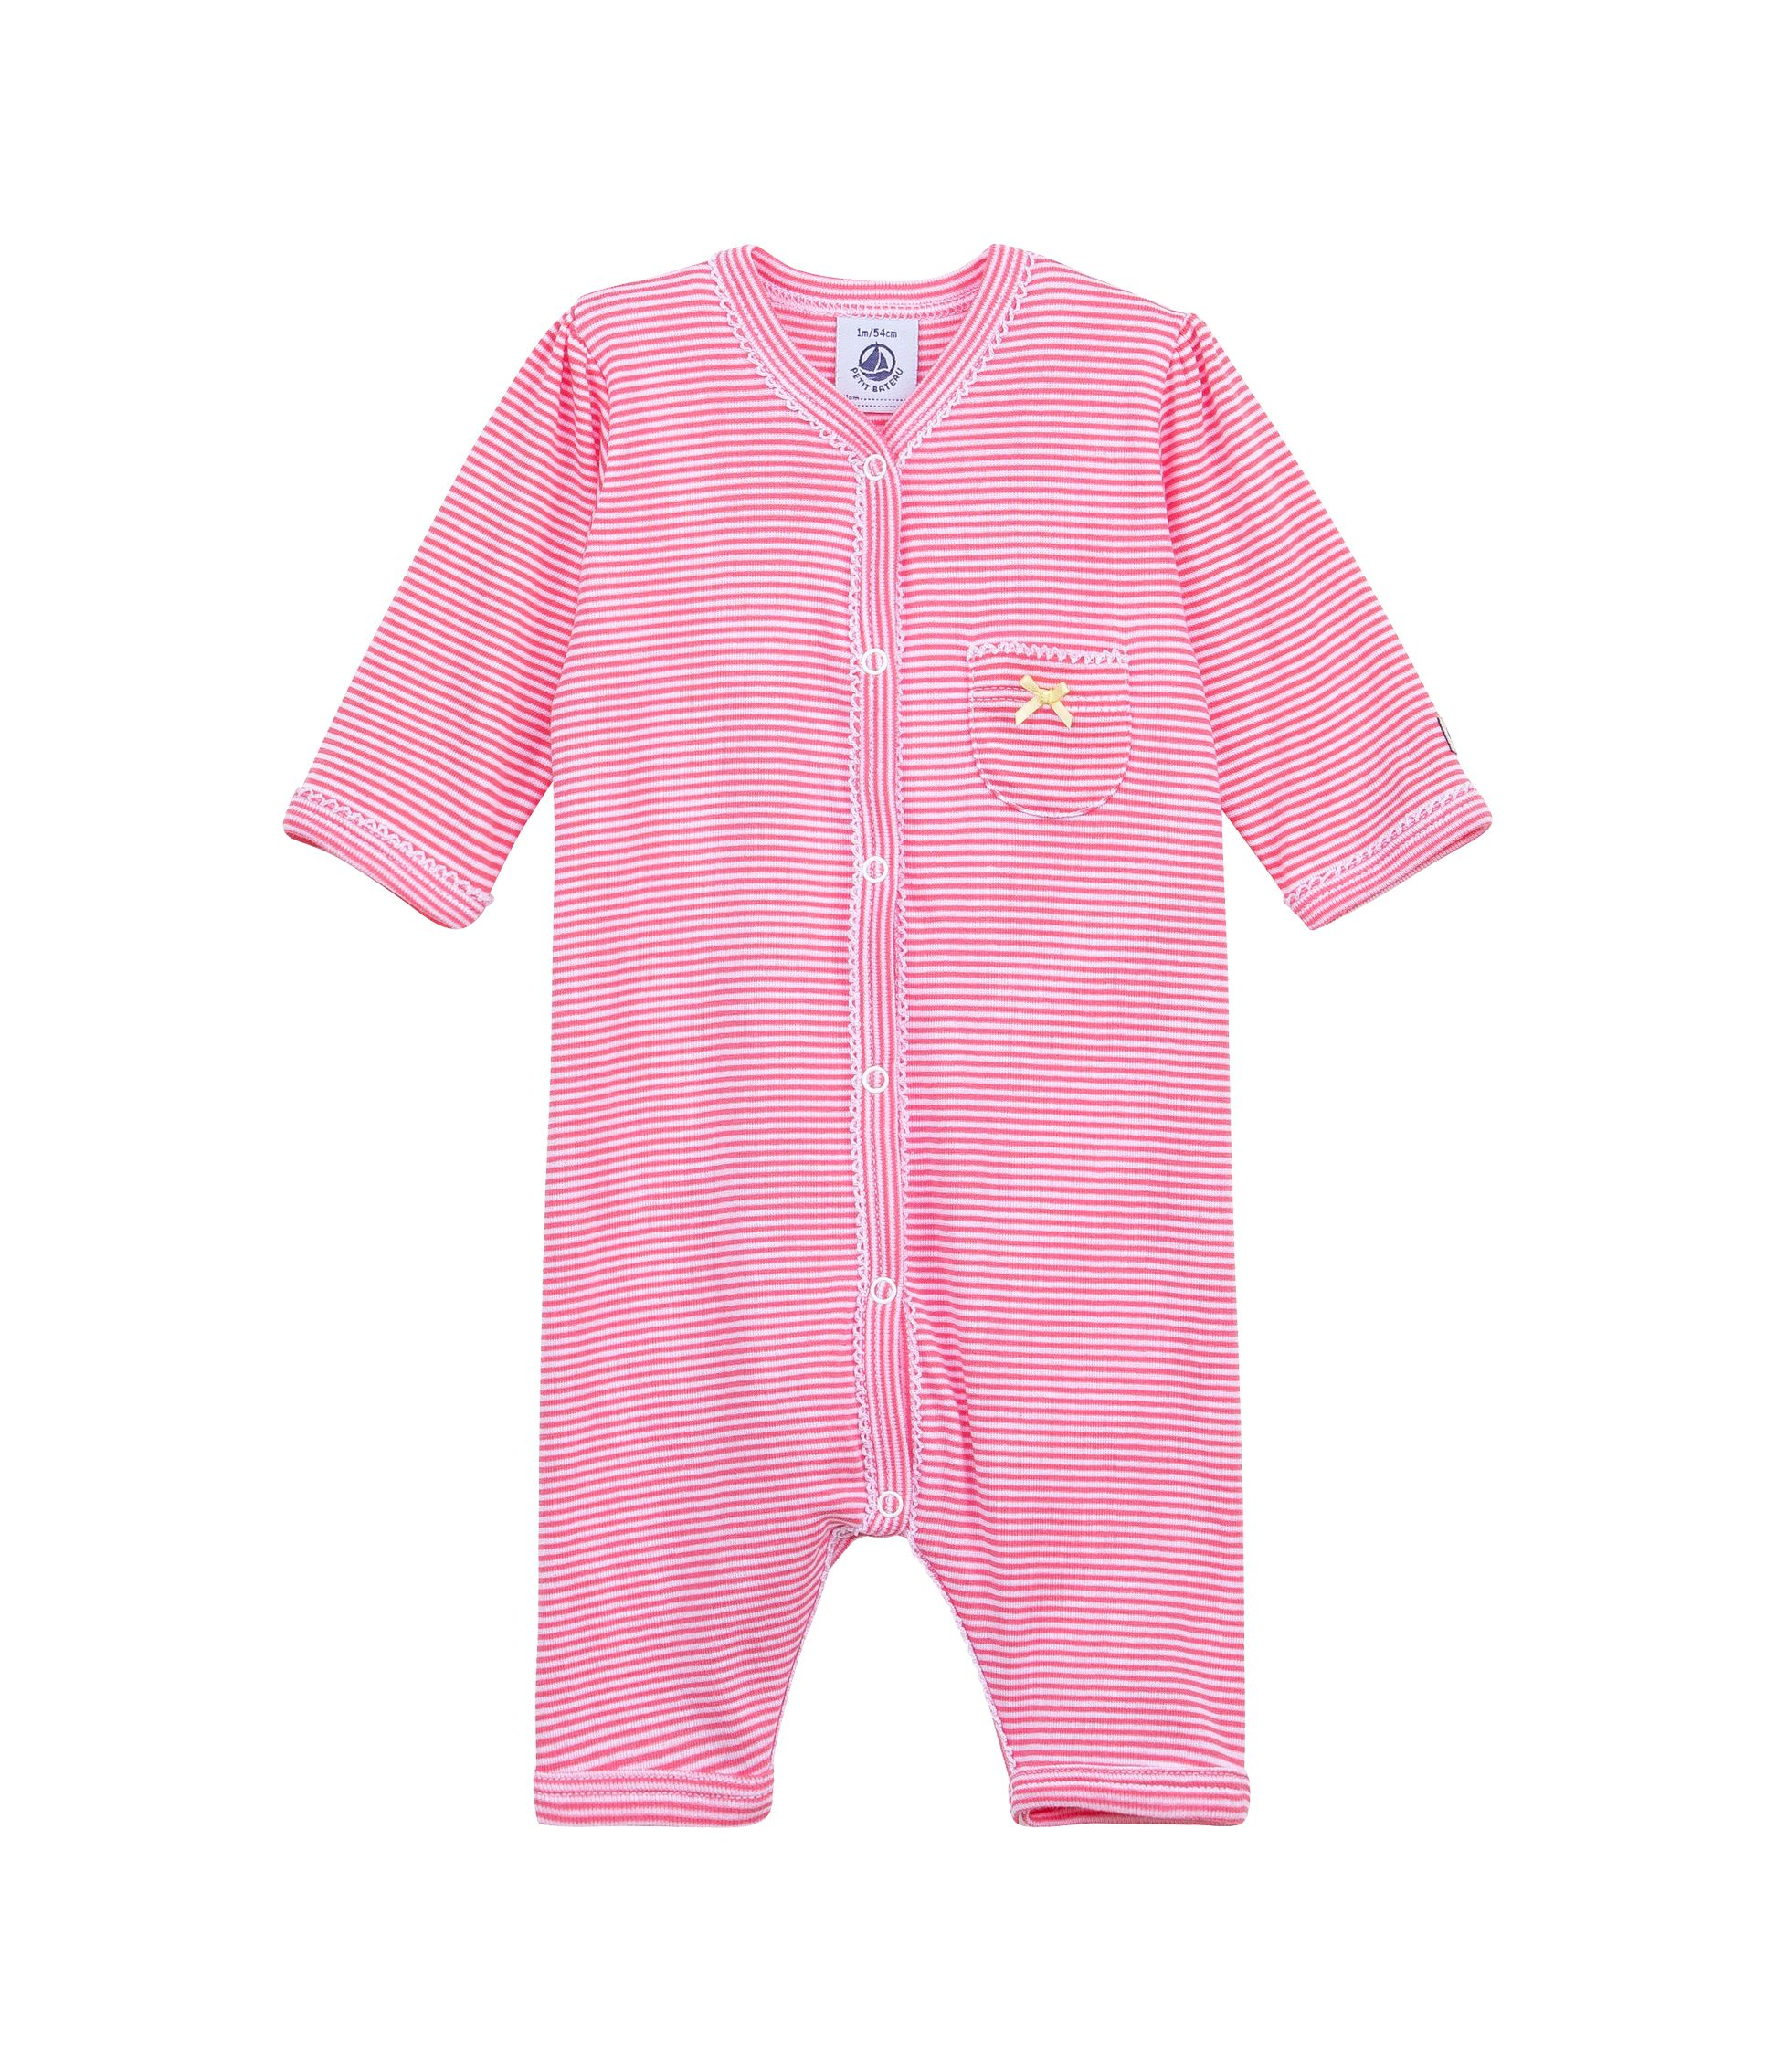 Baby girls footless sleepsuit